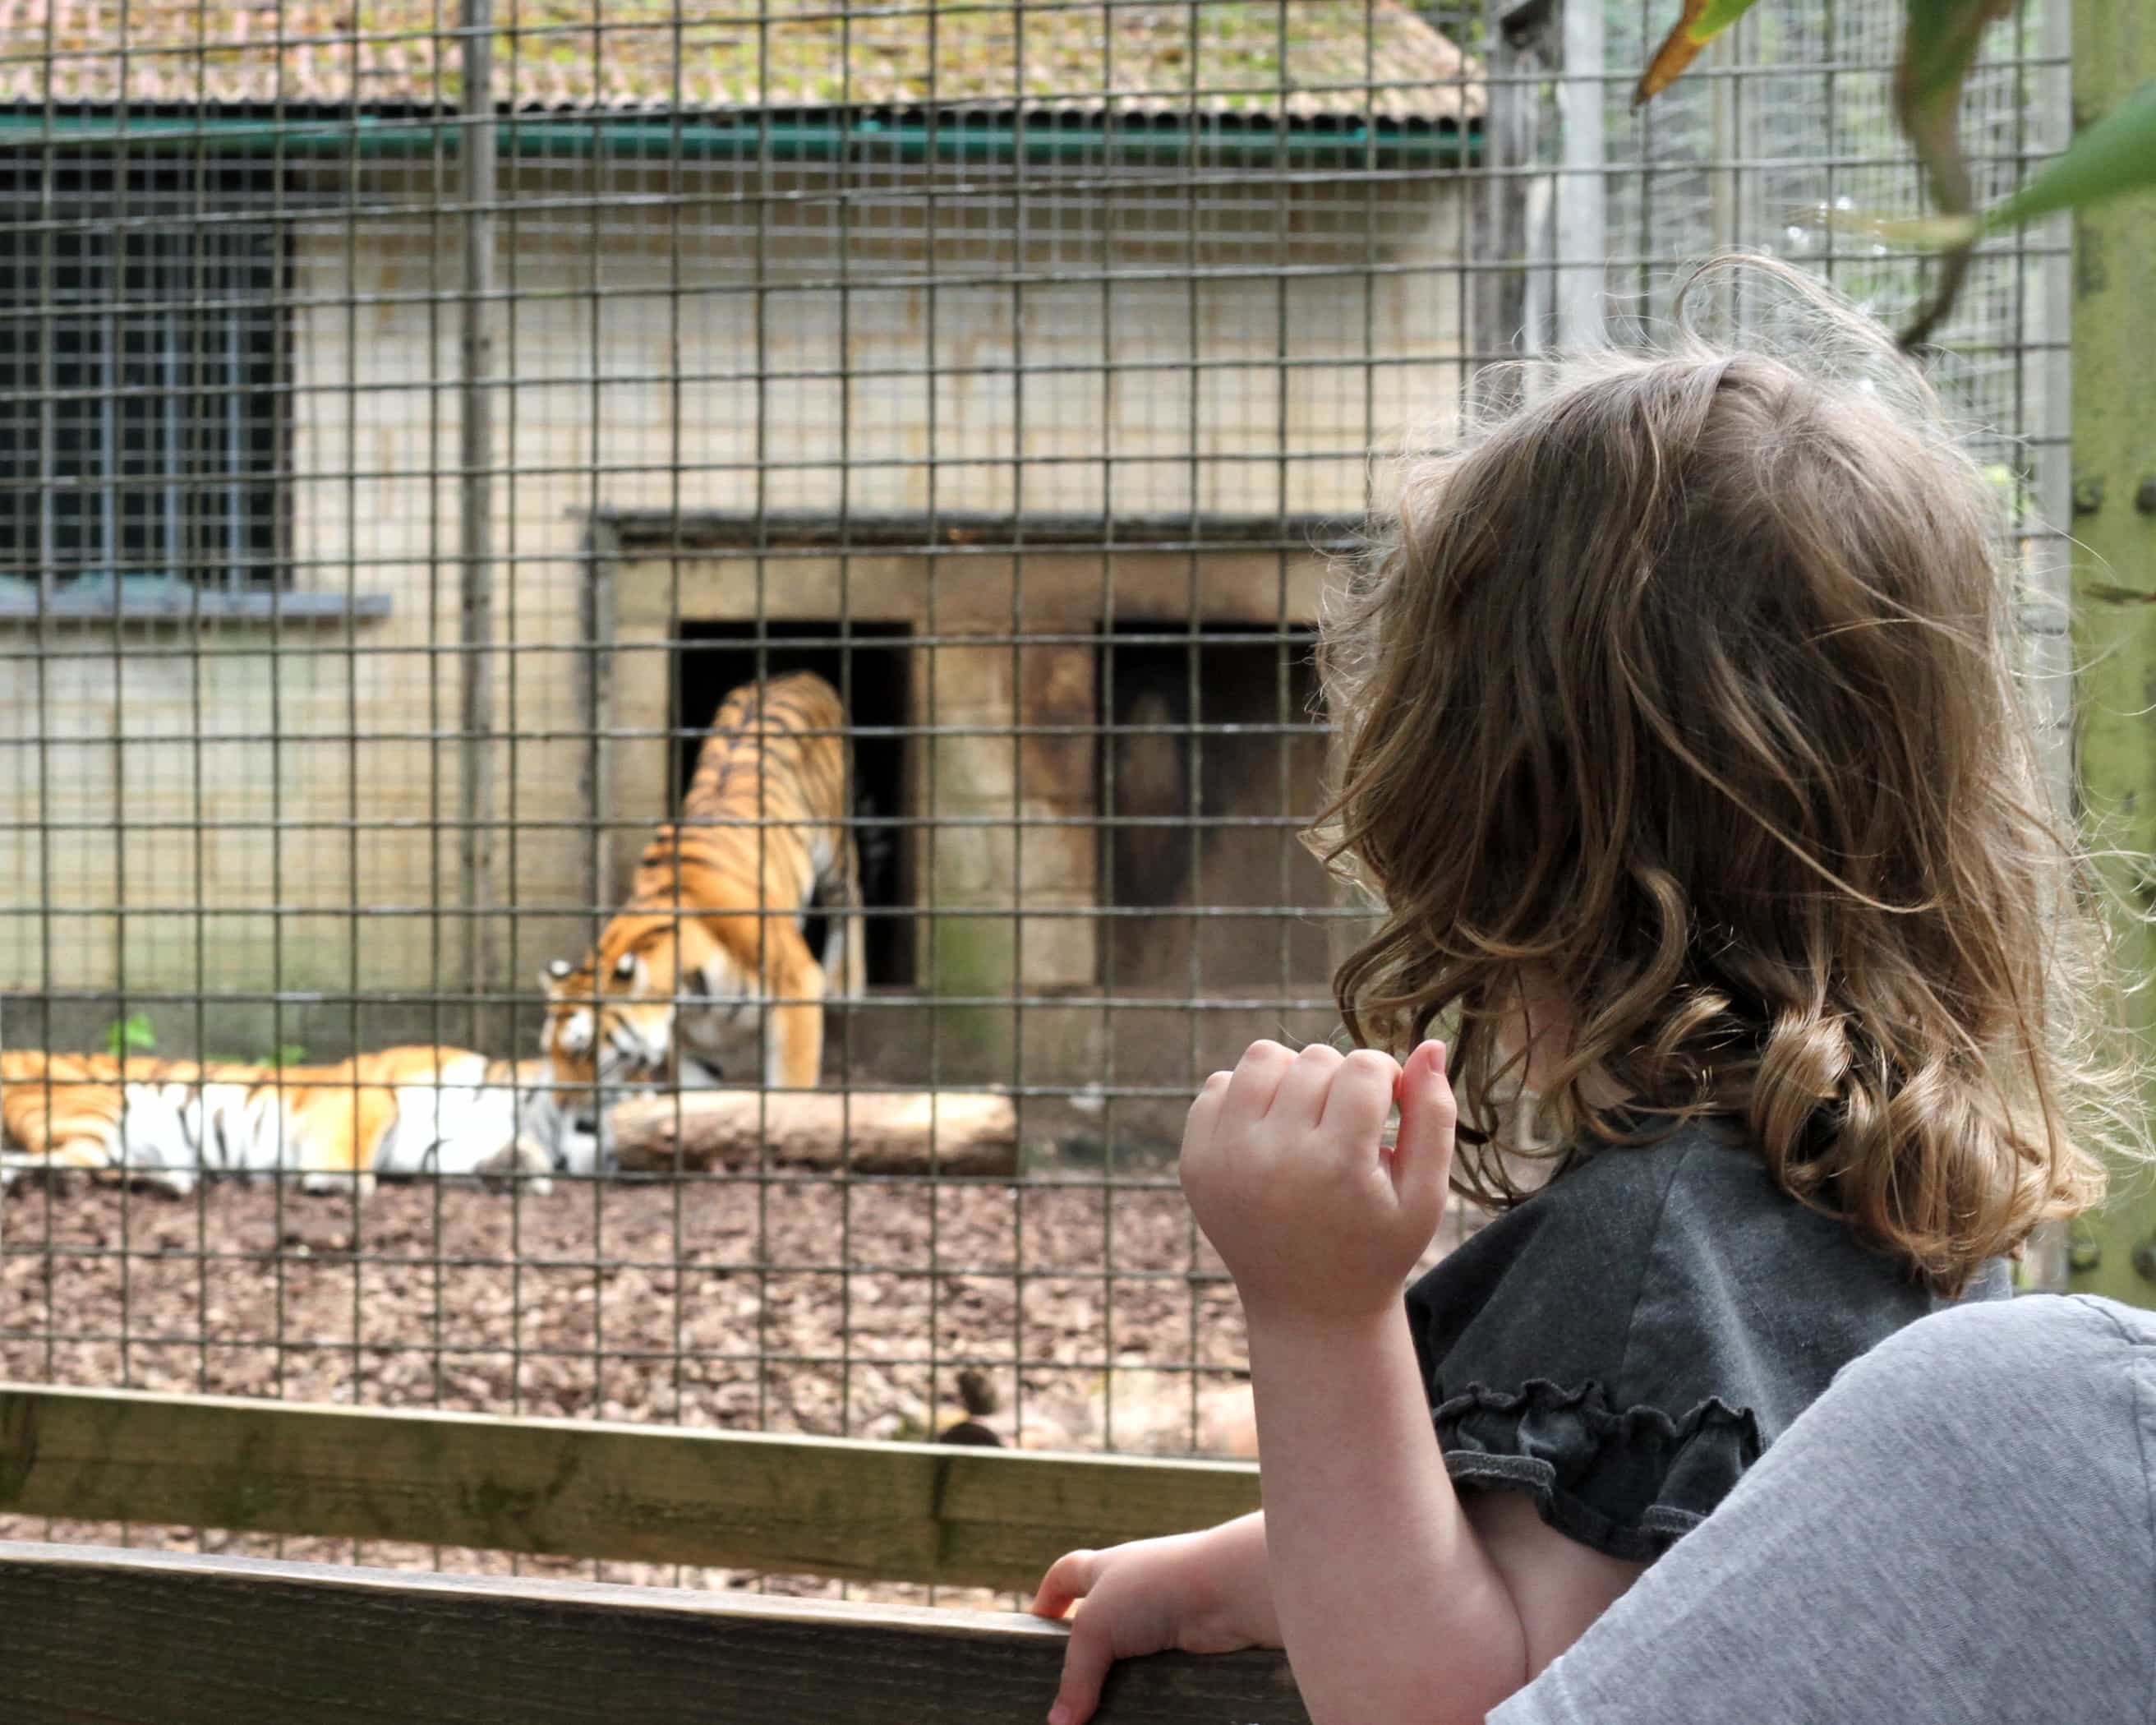 Littlest's watching the tiger pair